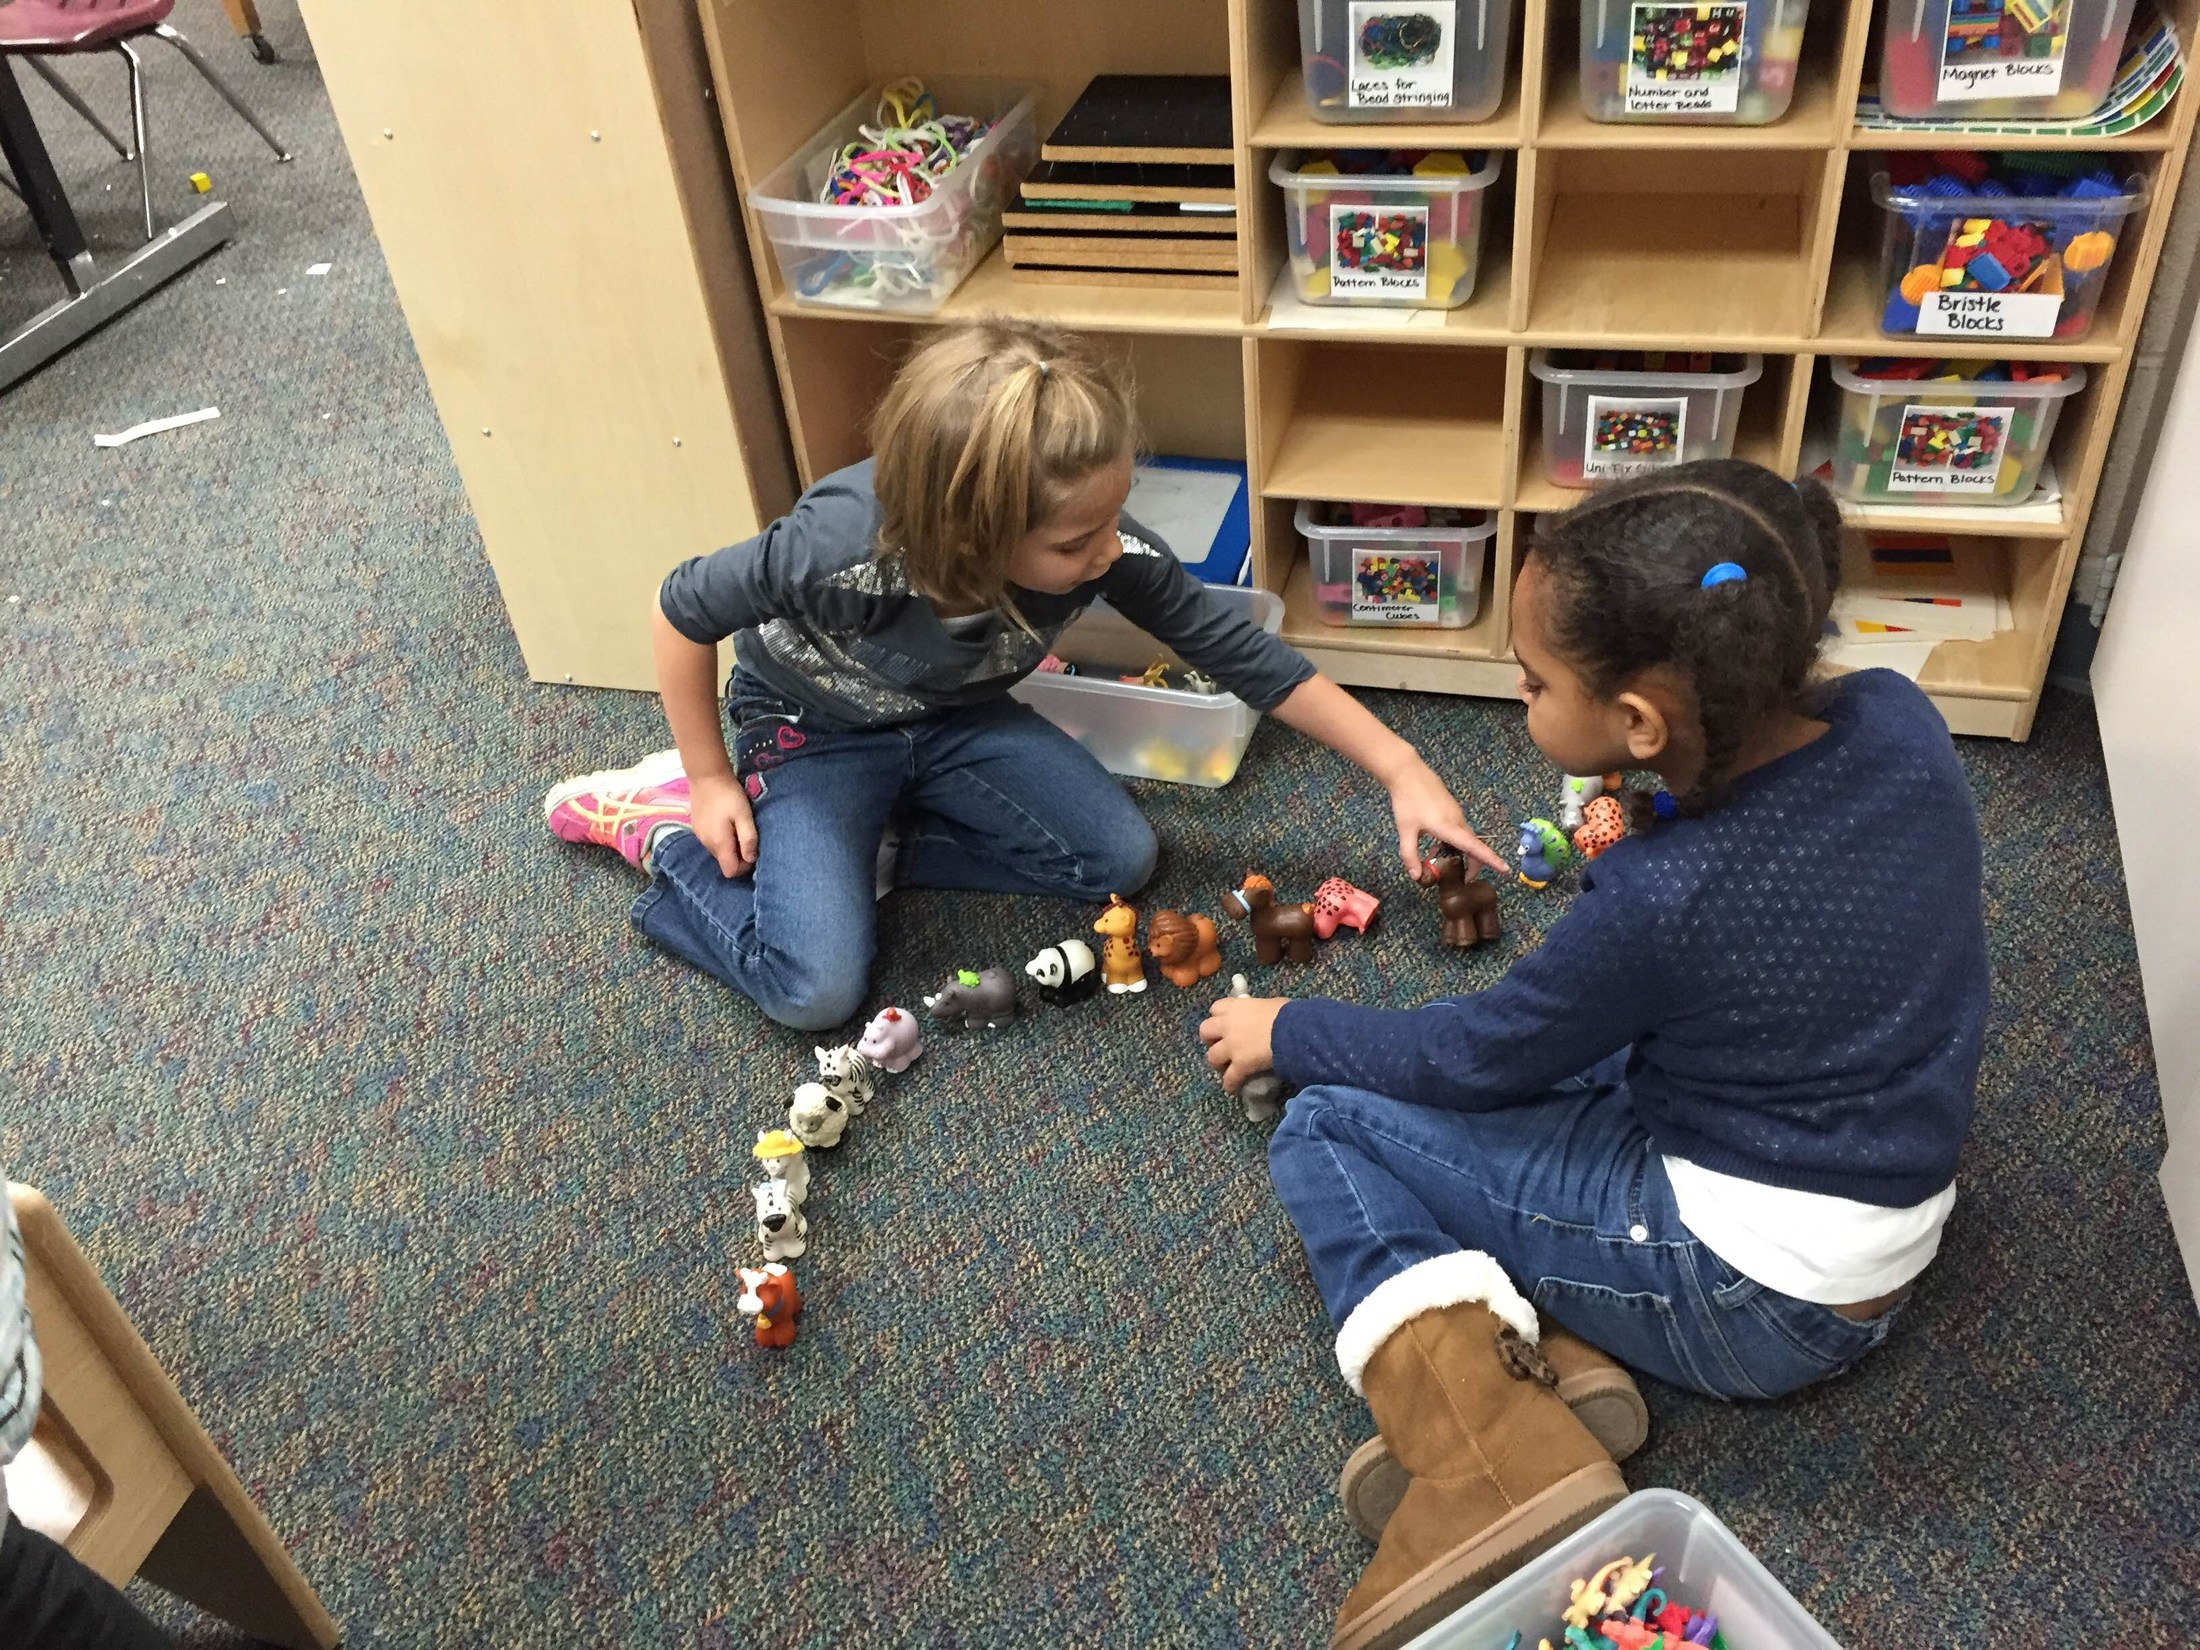 Two girls constructing a train of animals.